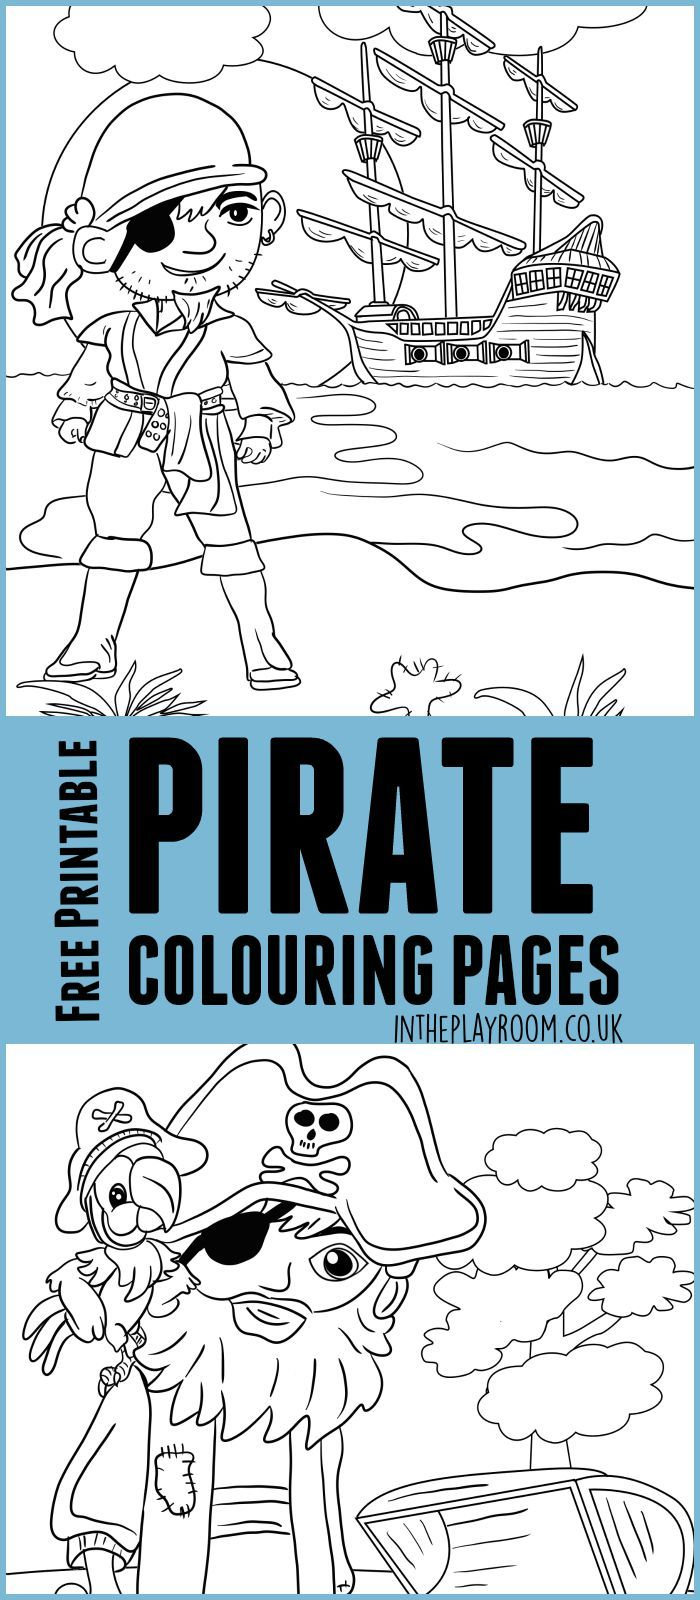 17 best images about pirates on pinterest pirate flags for Pirate coloring pages for preschool